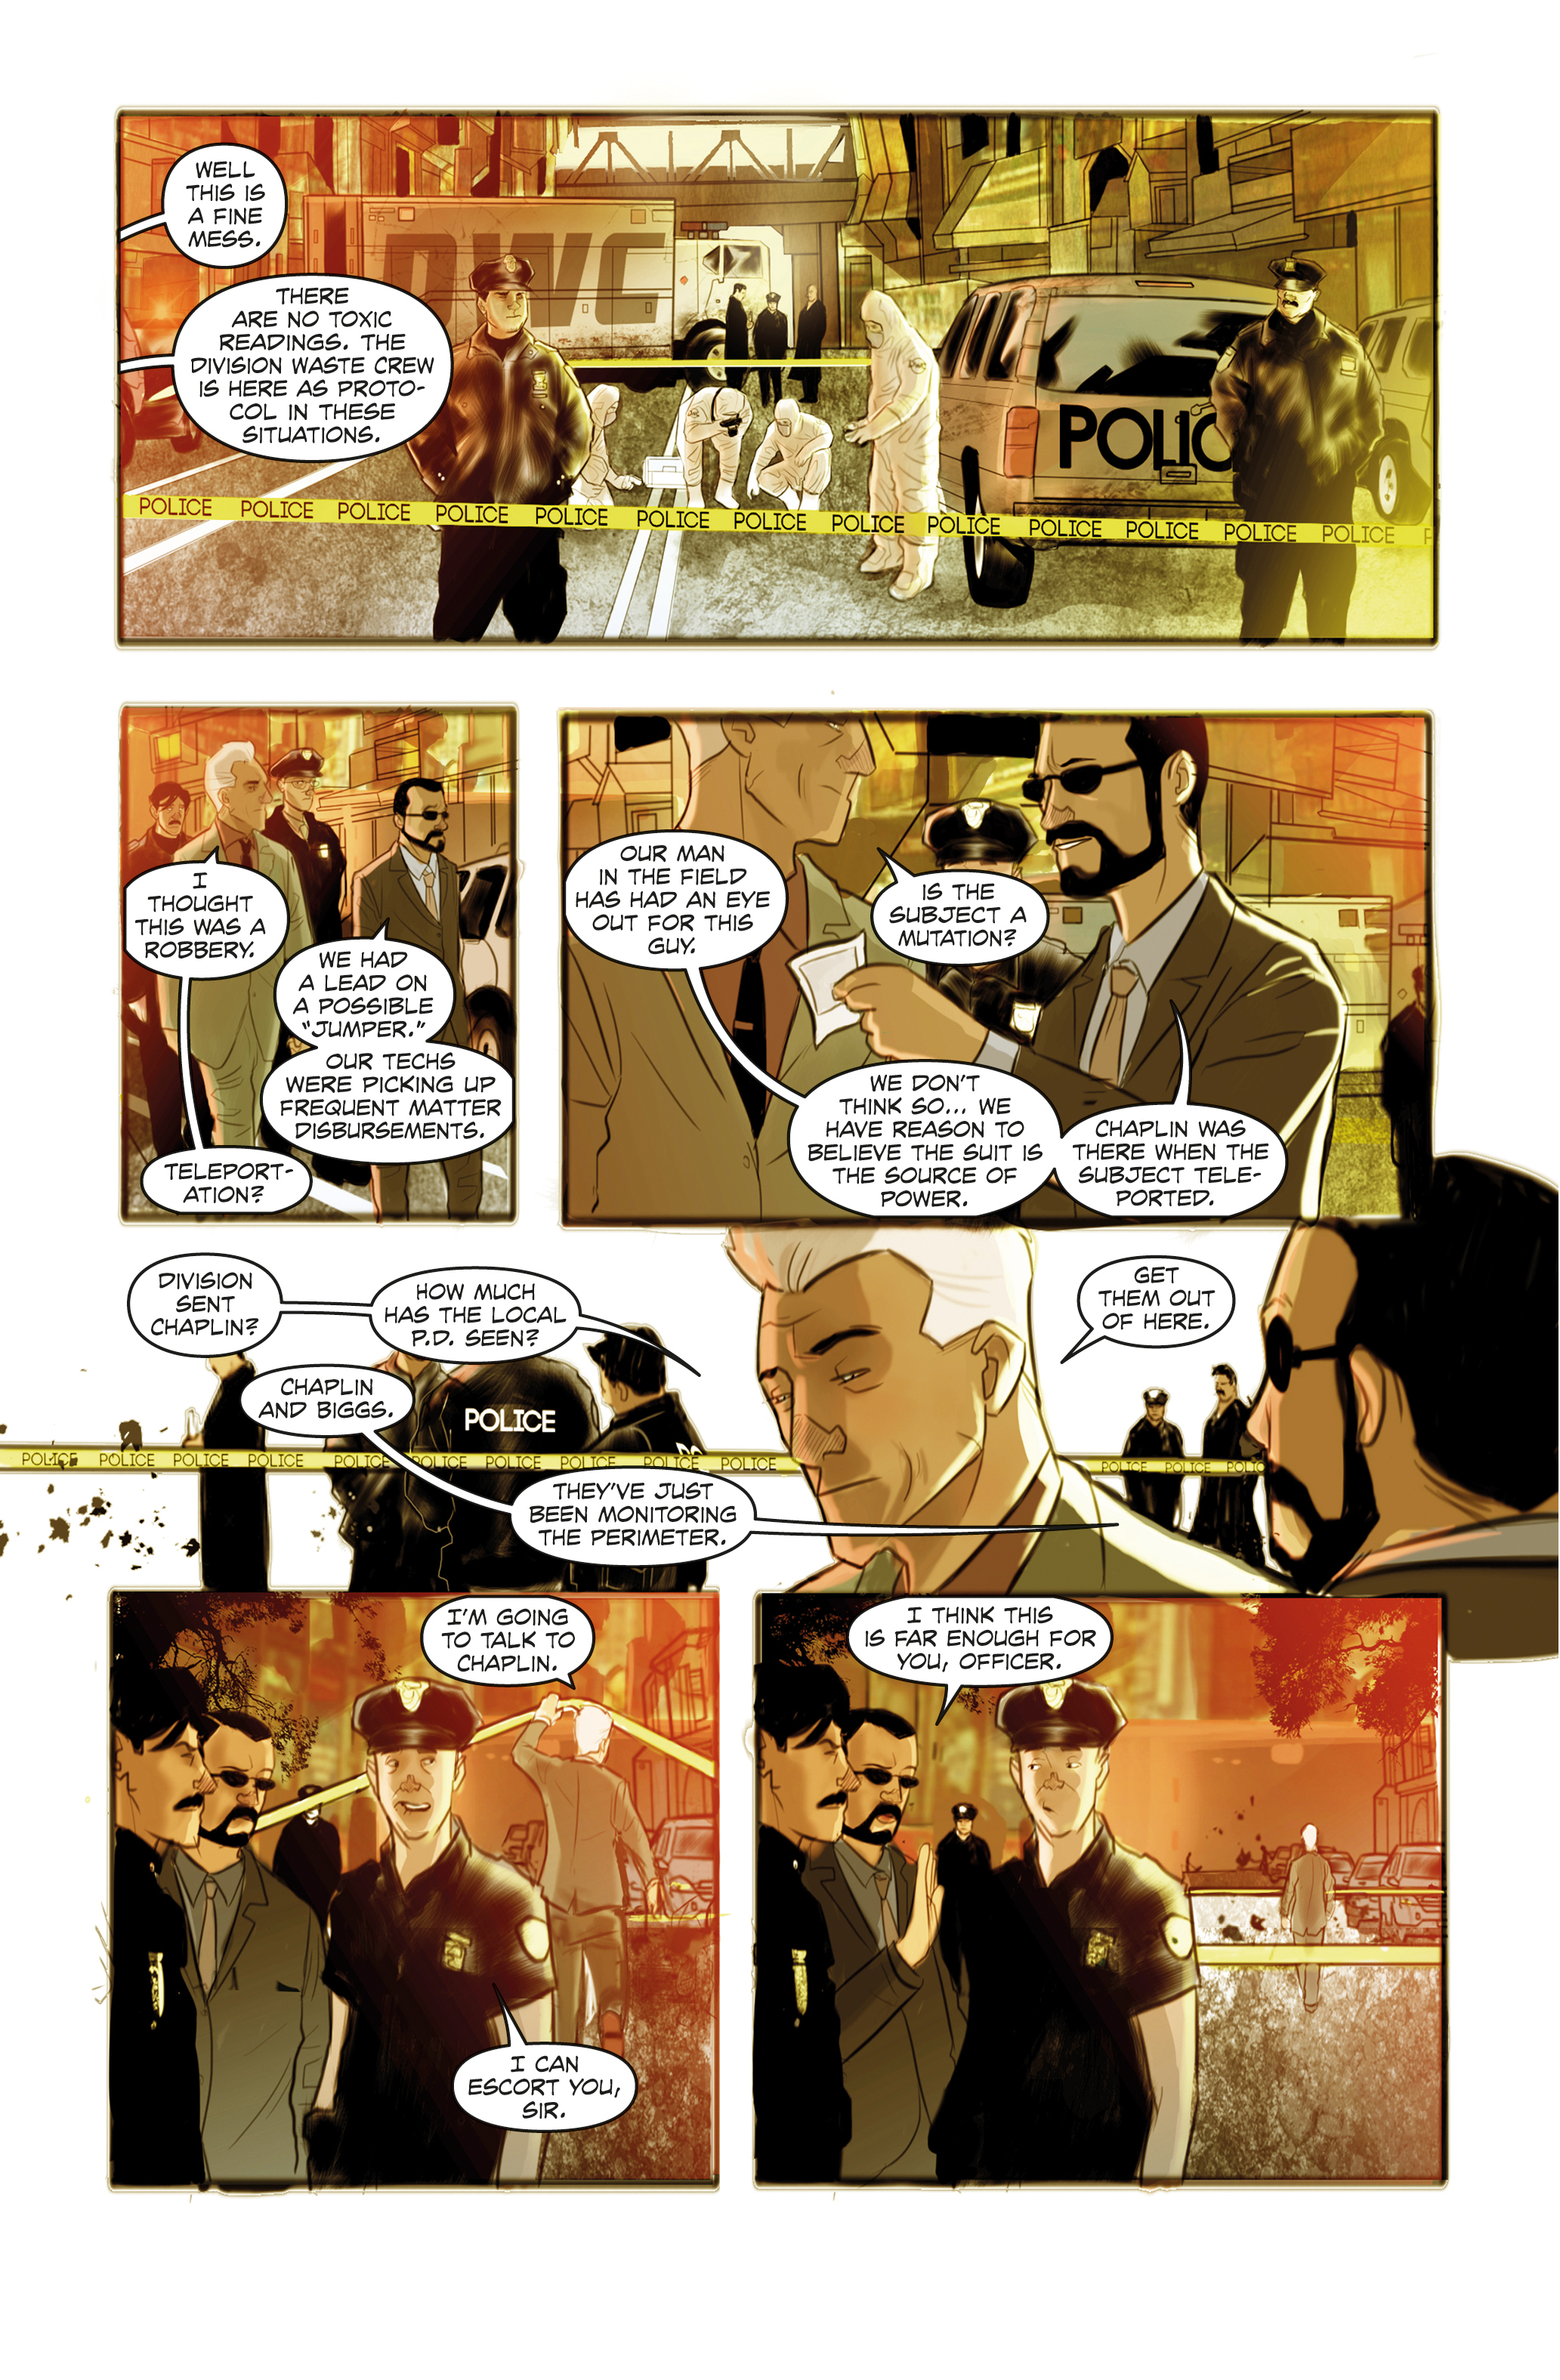 Shelter Division #1 Page 8-01.jpg